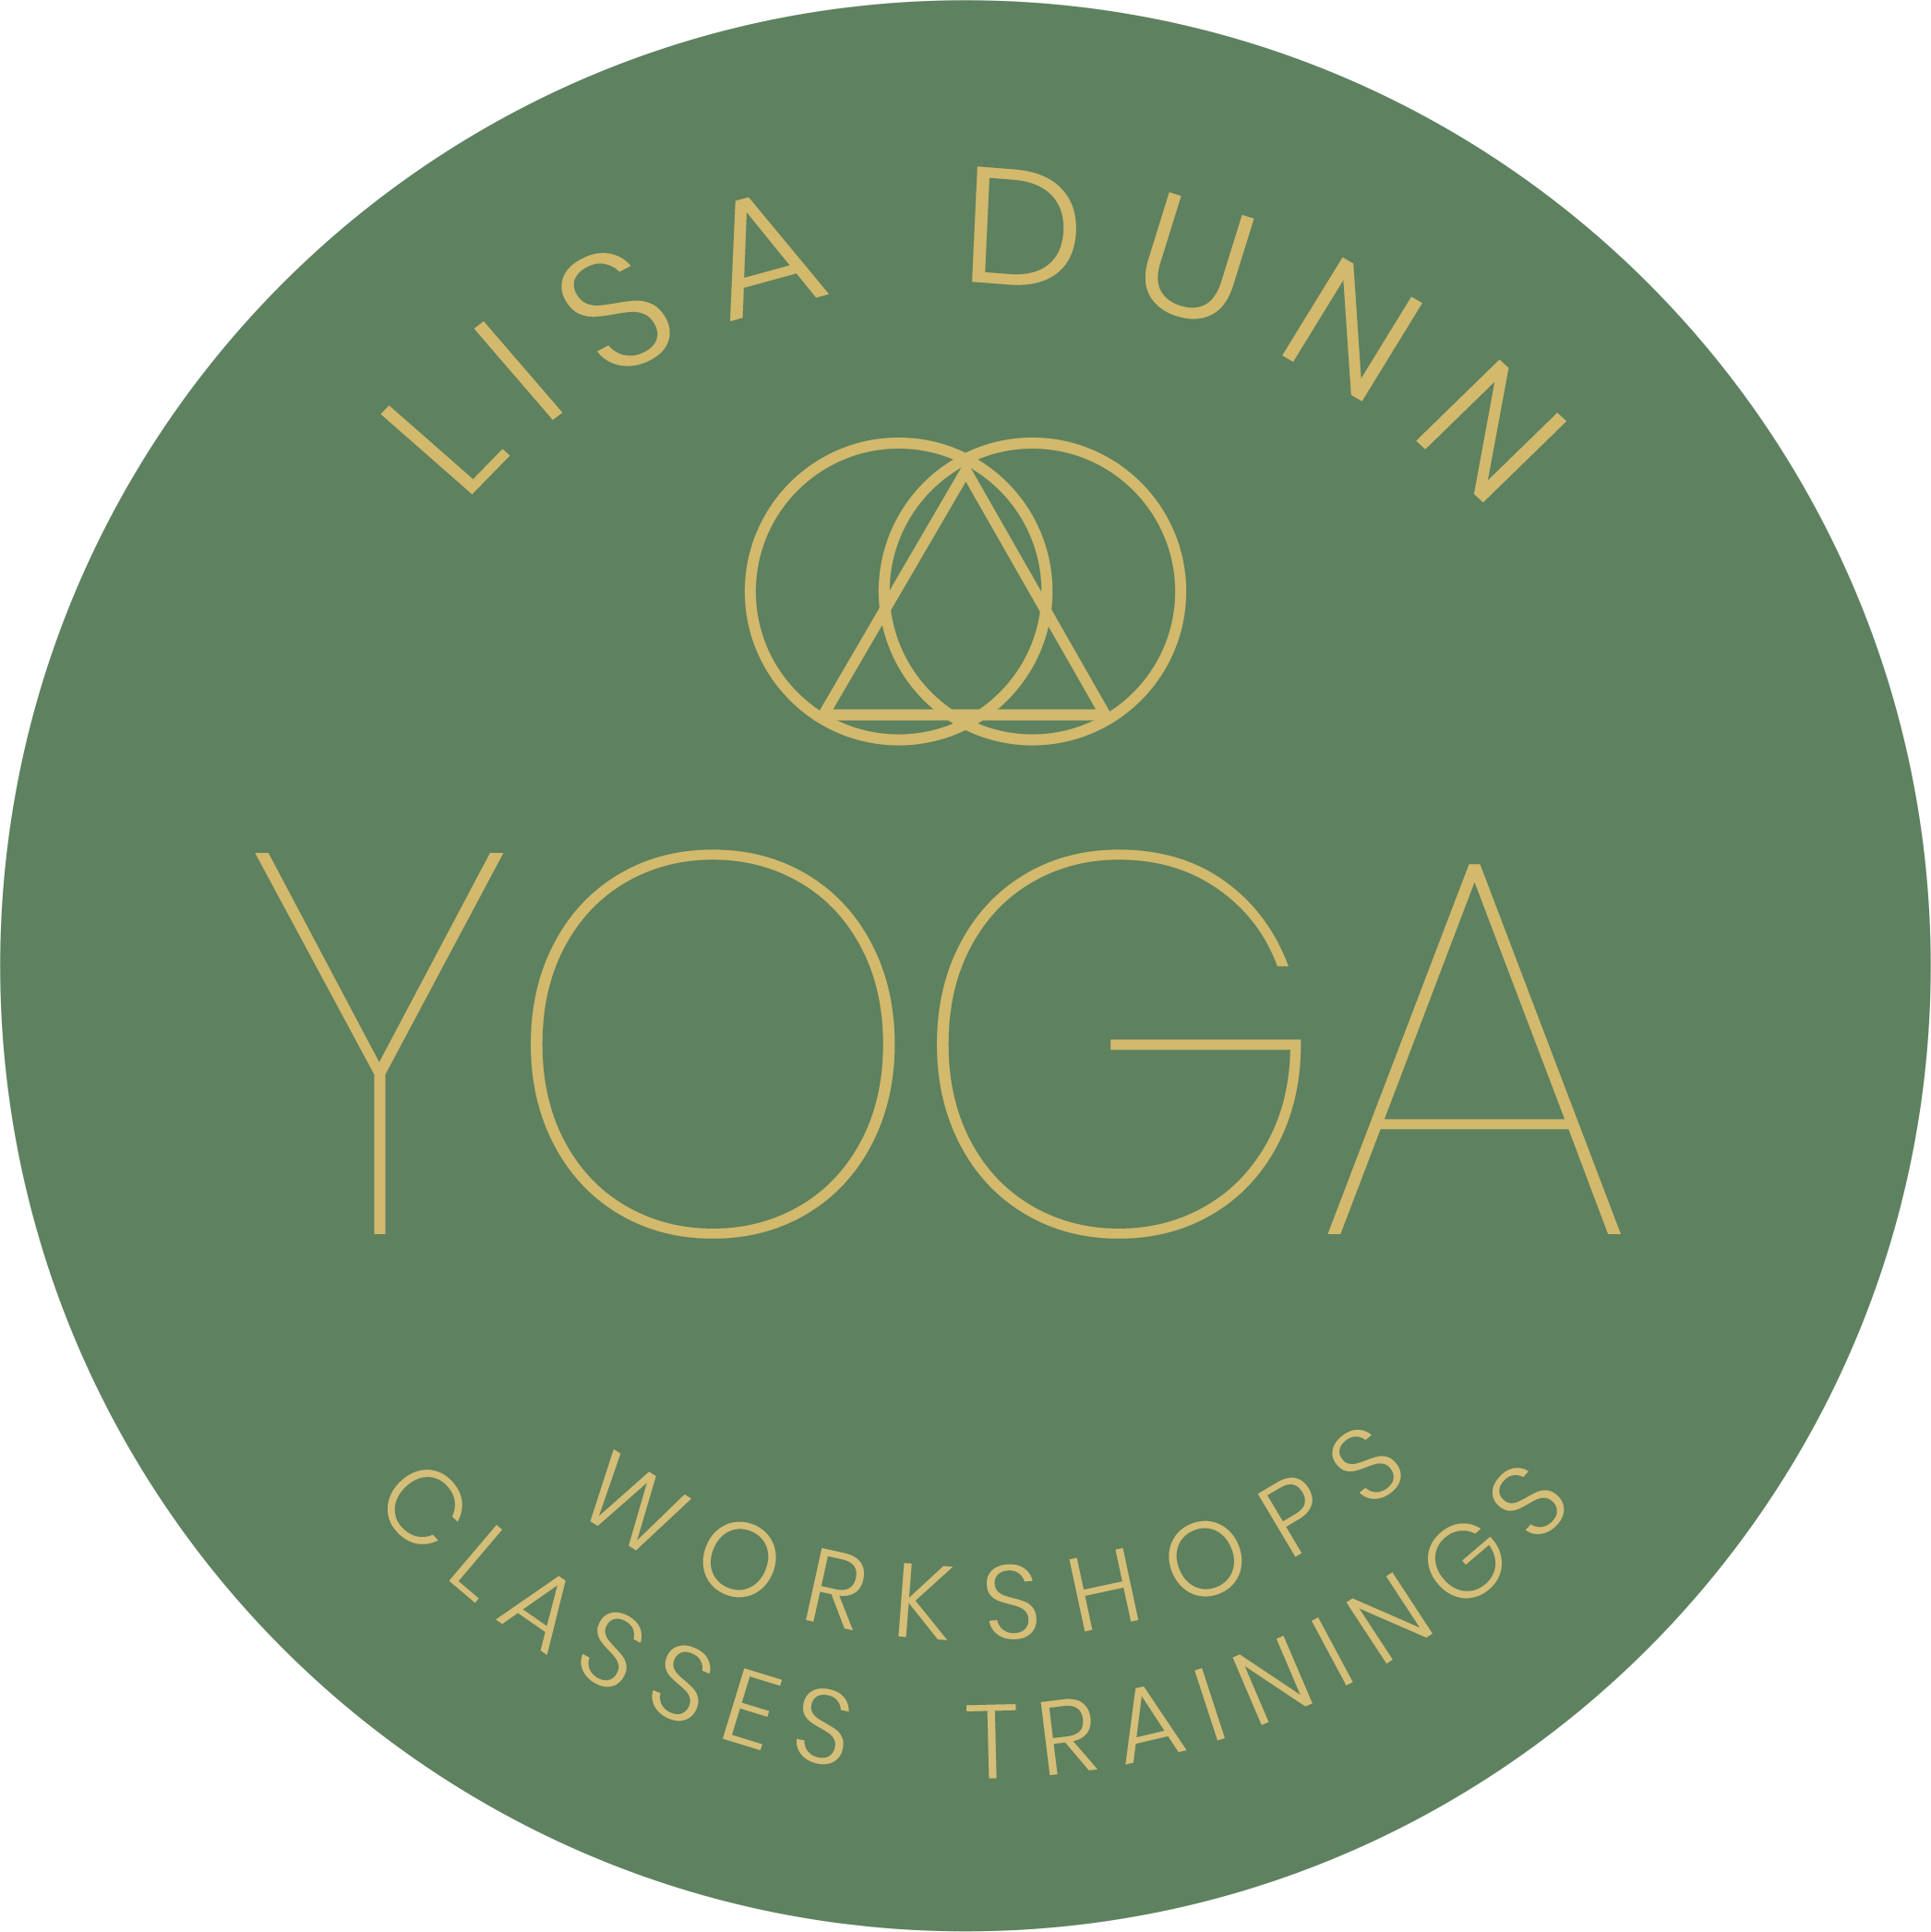 Lisa Dunn Yoga - Online live yoga classes